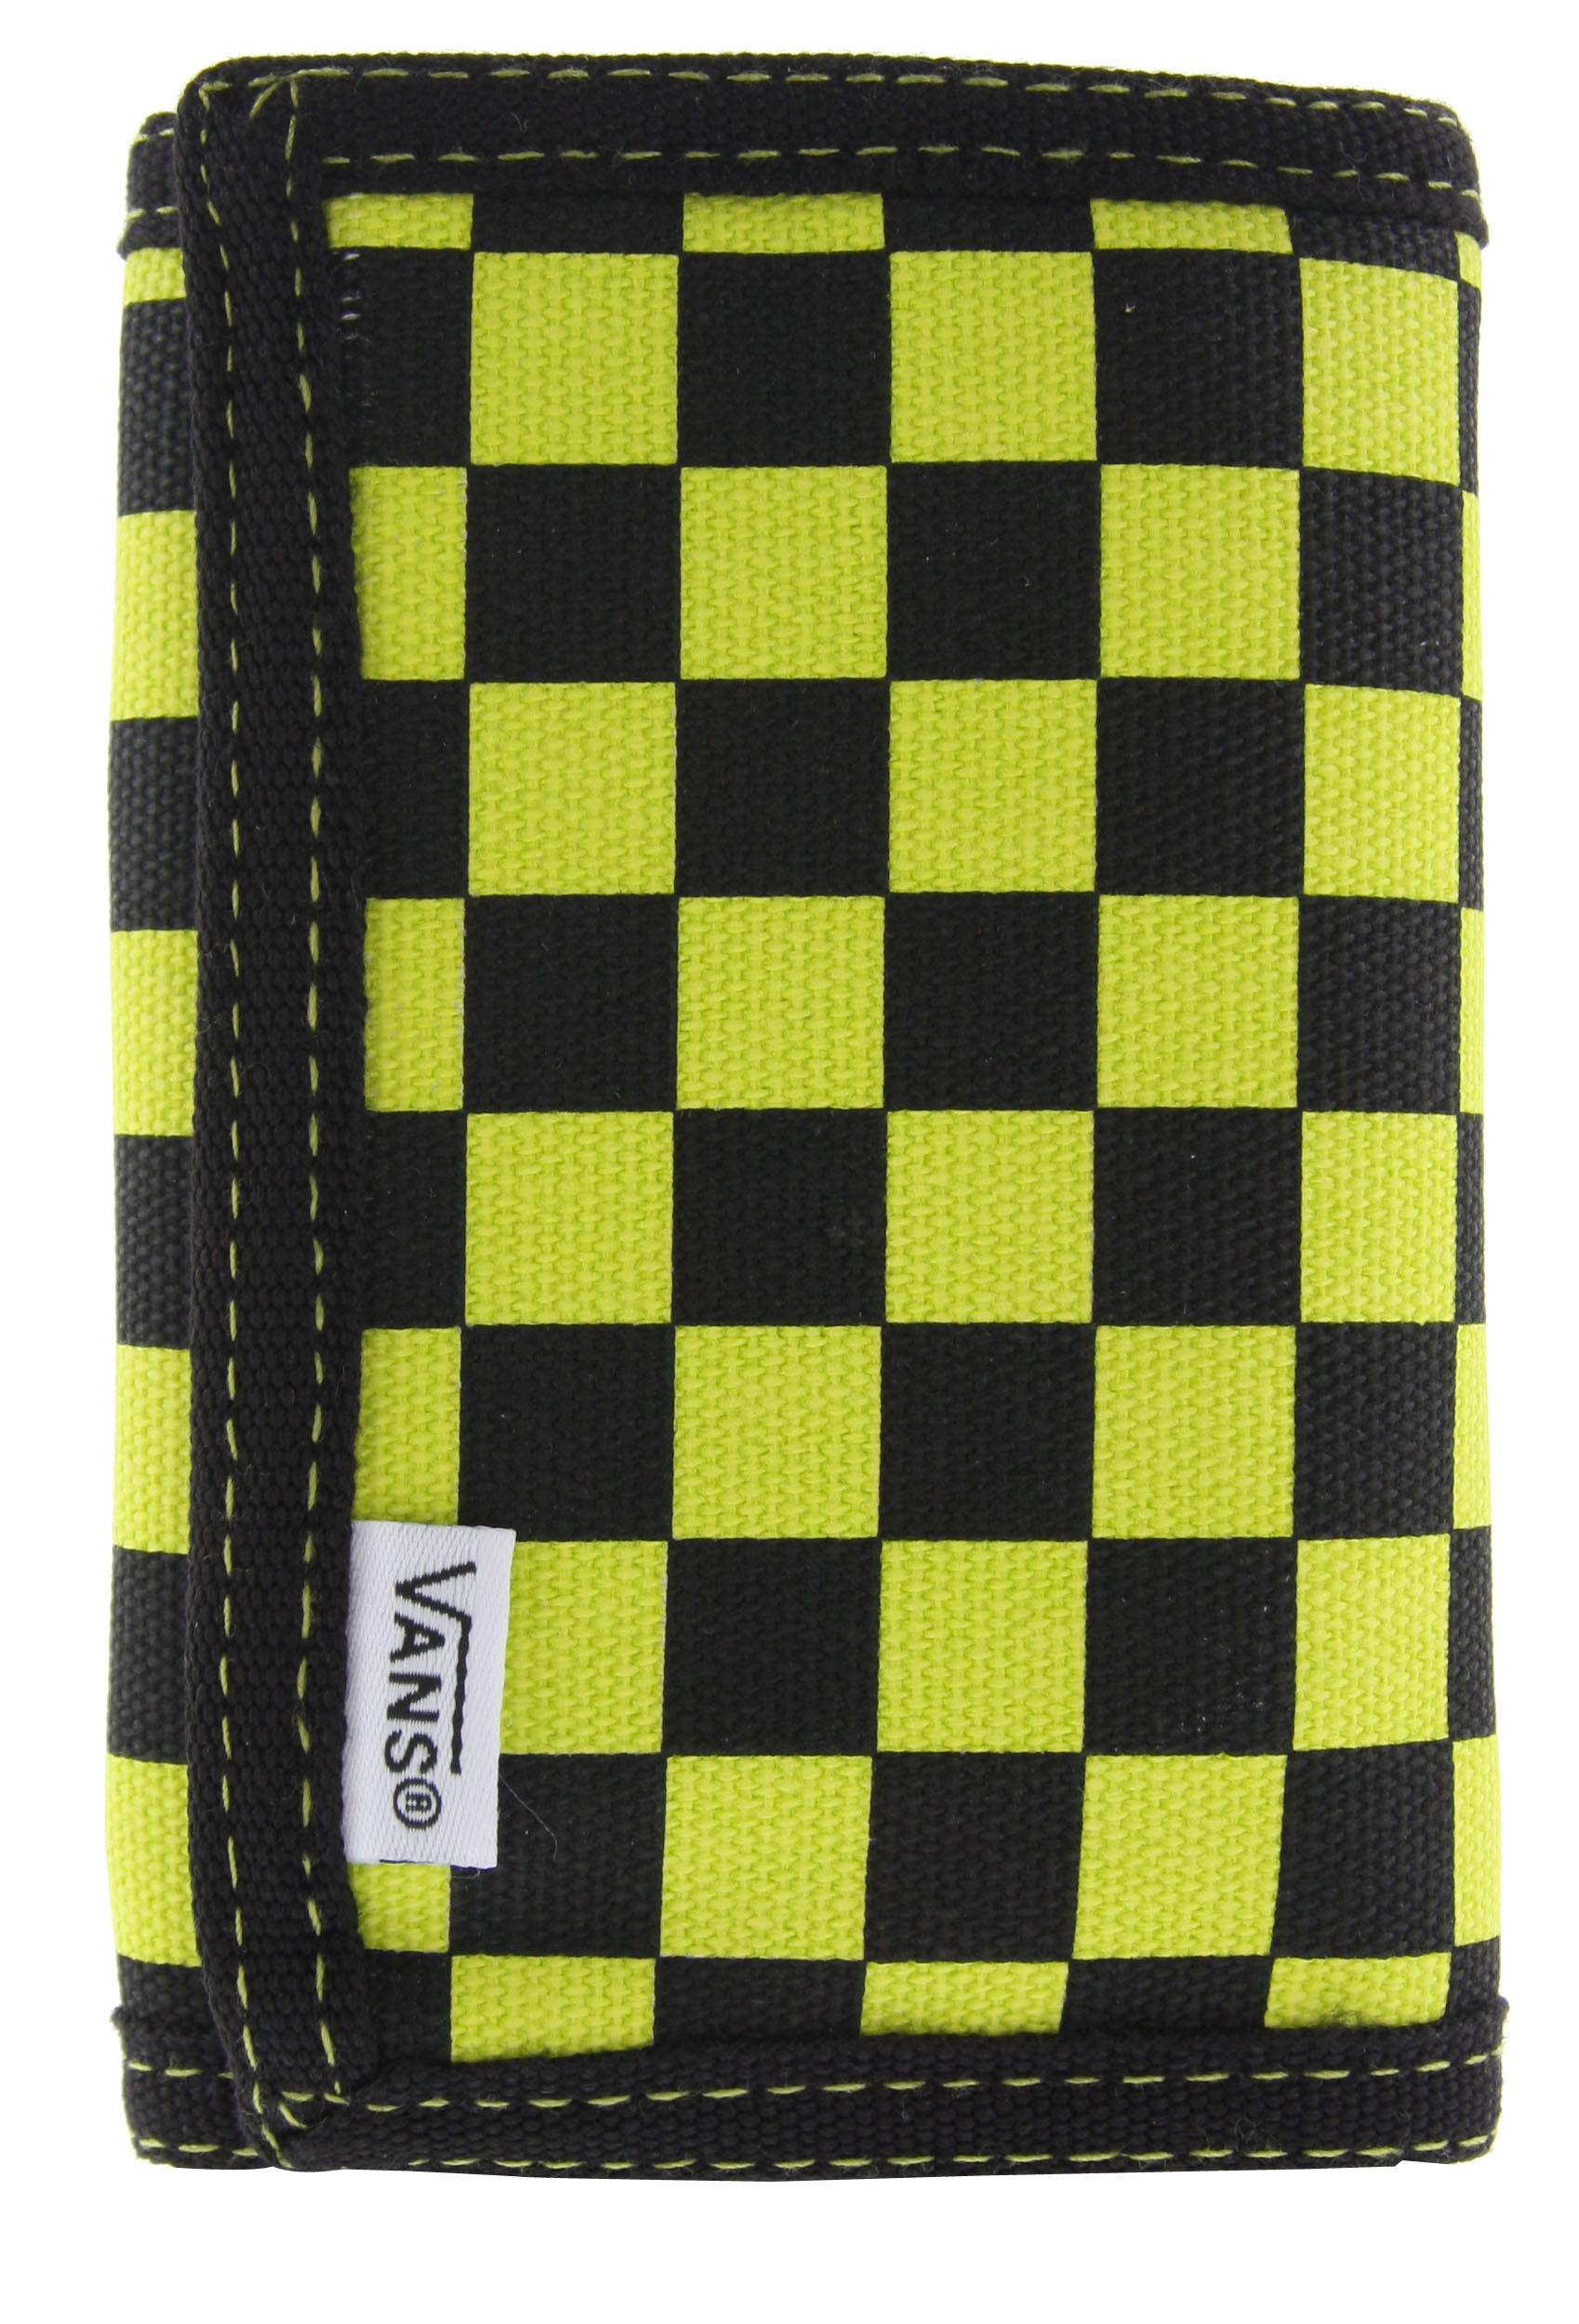 Skateboard 1% Cotton Canvas trifold wallet with all-over checkerboard print - $13.95